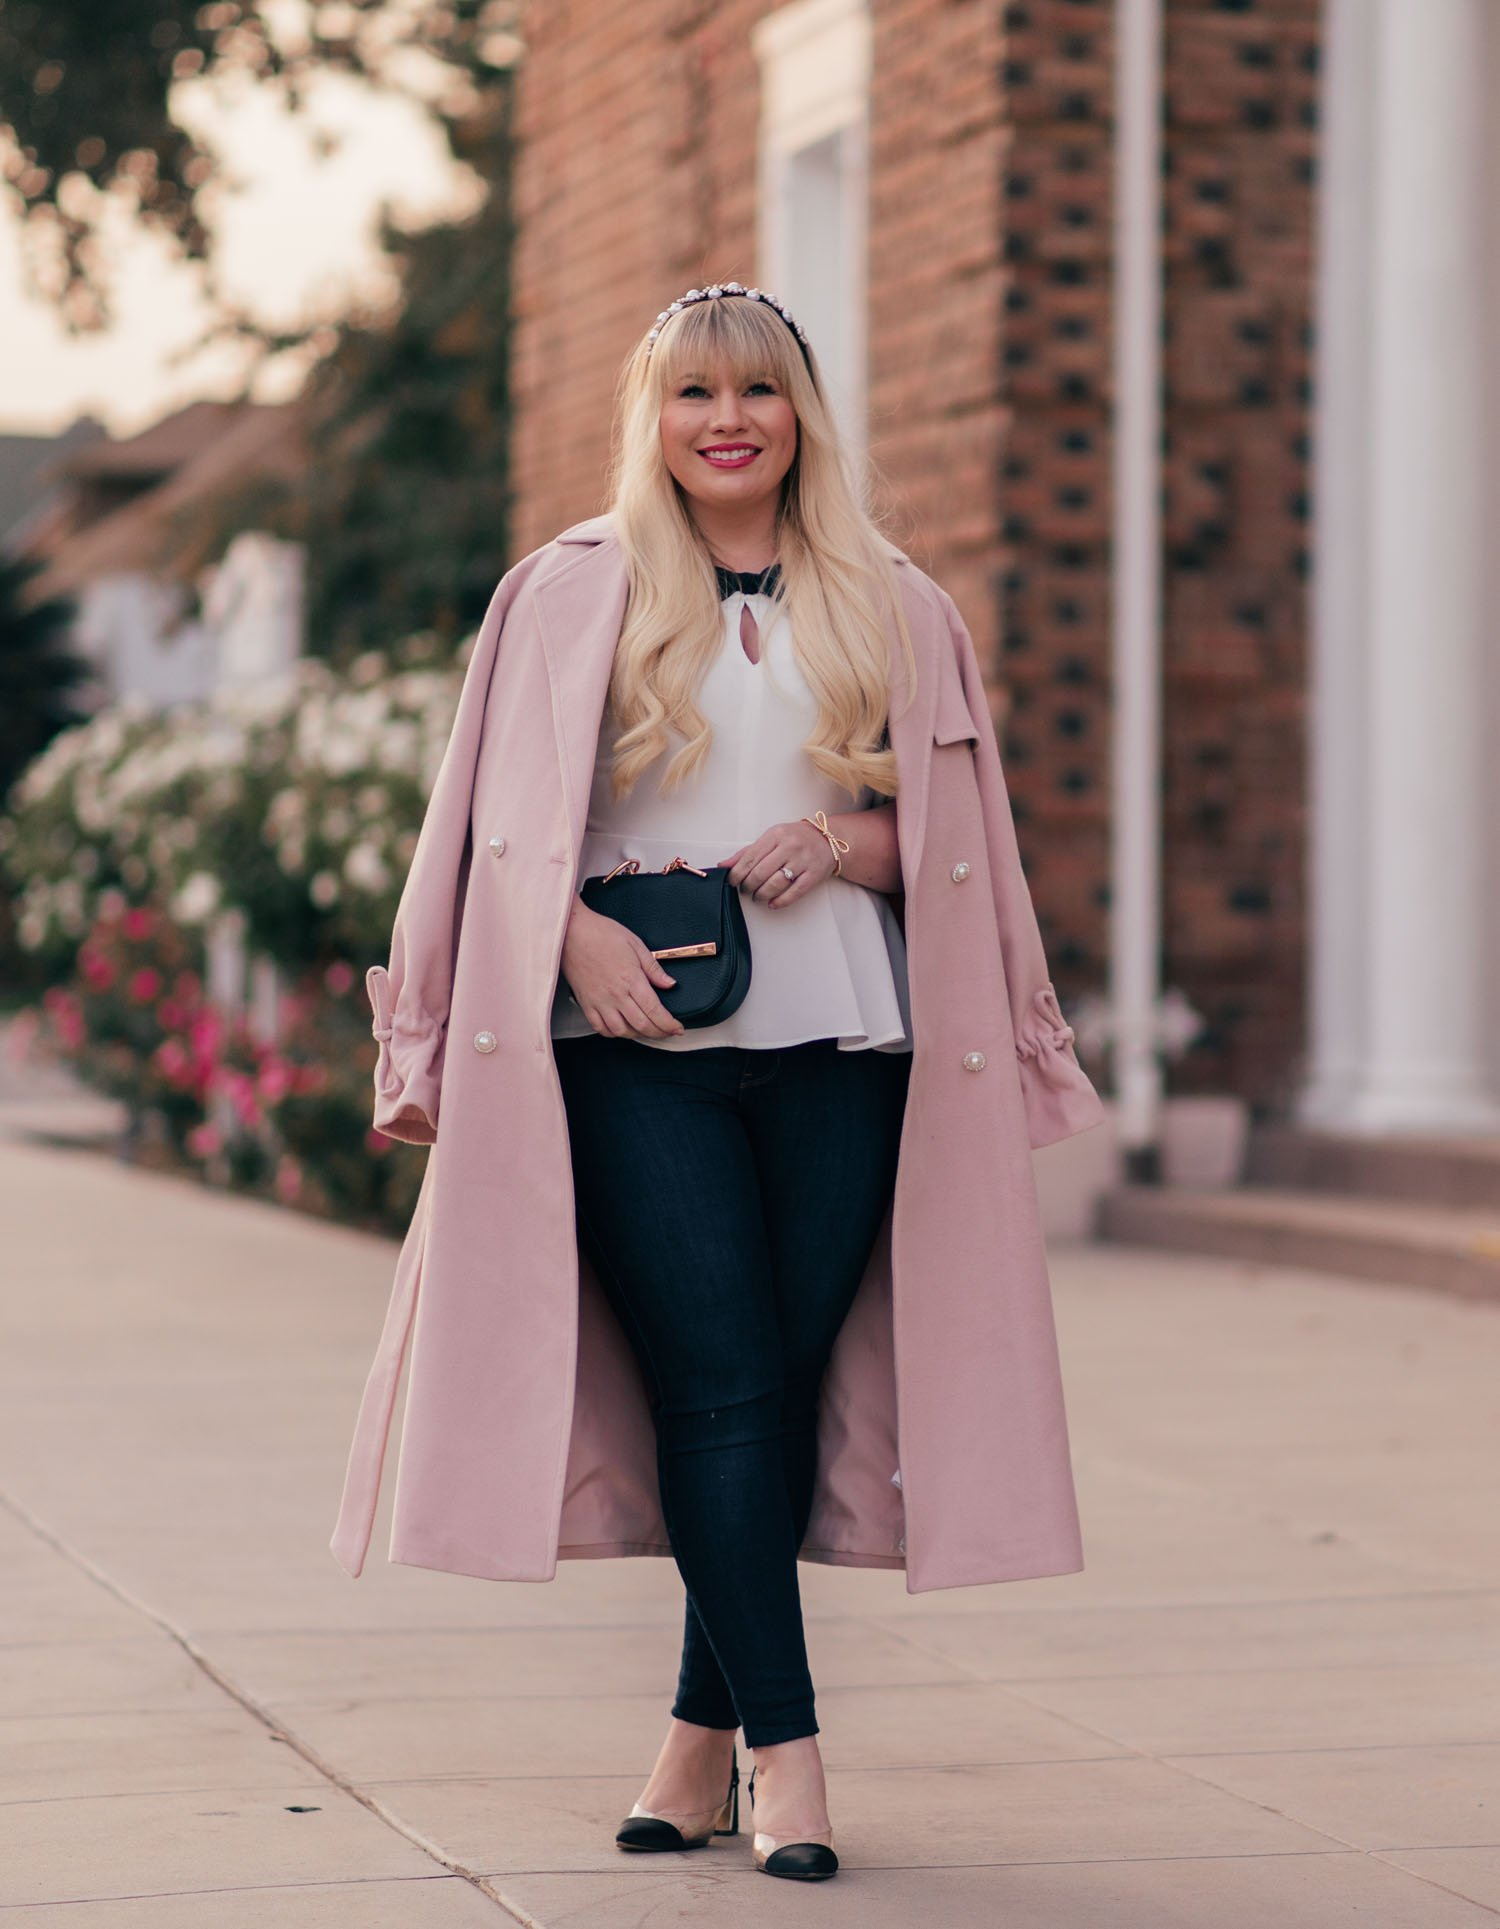 Elizabeth Hugen of Lizzie in Lace wears a pink winter coat